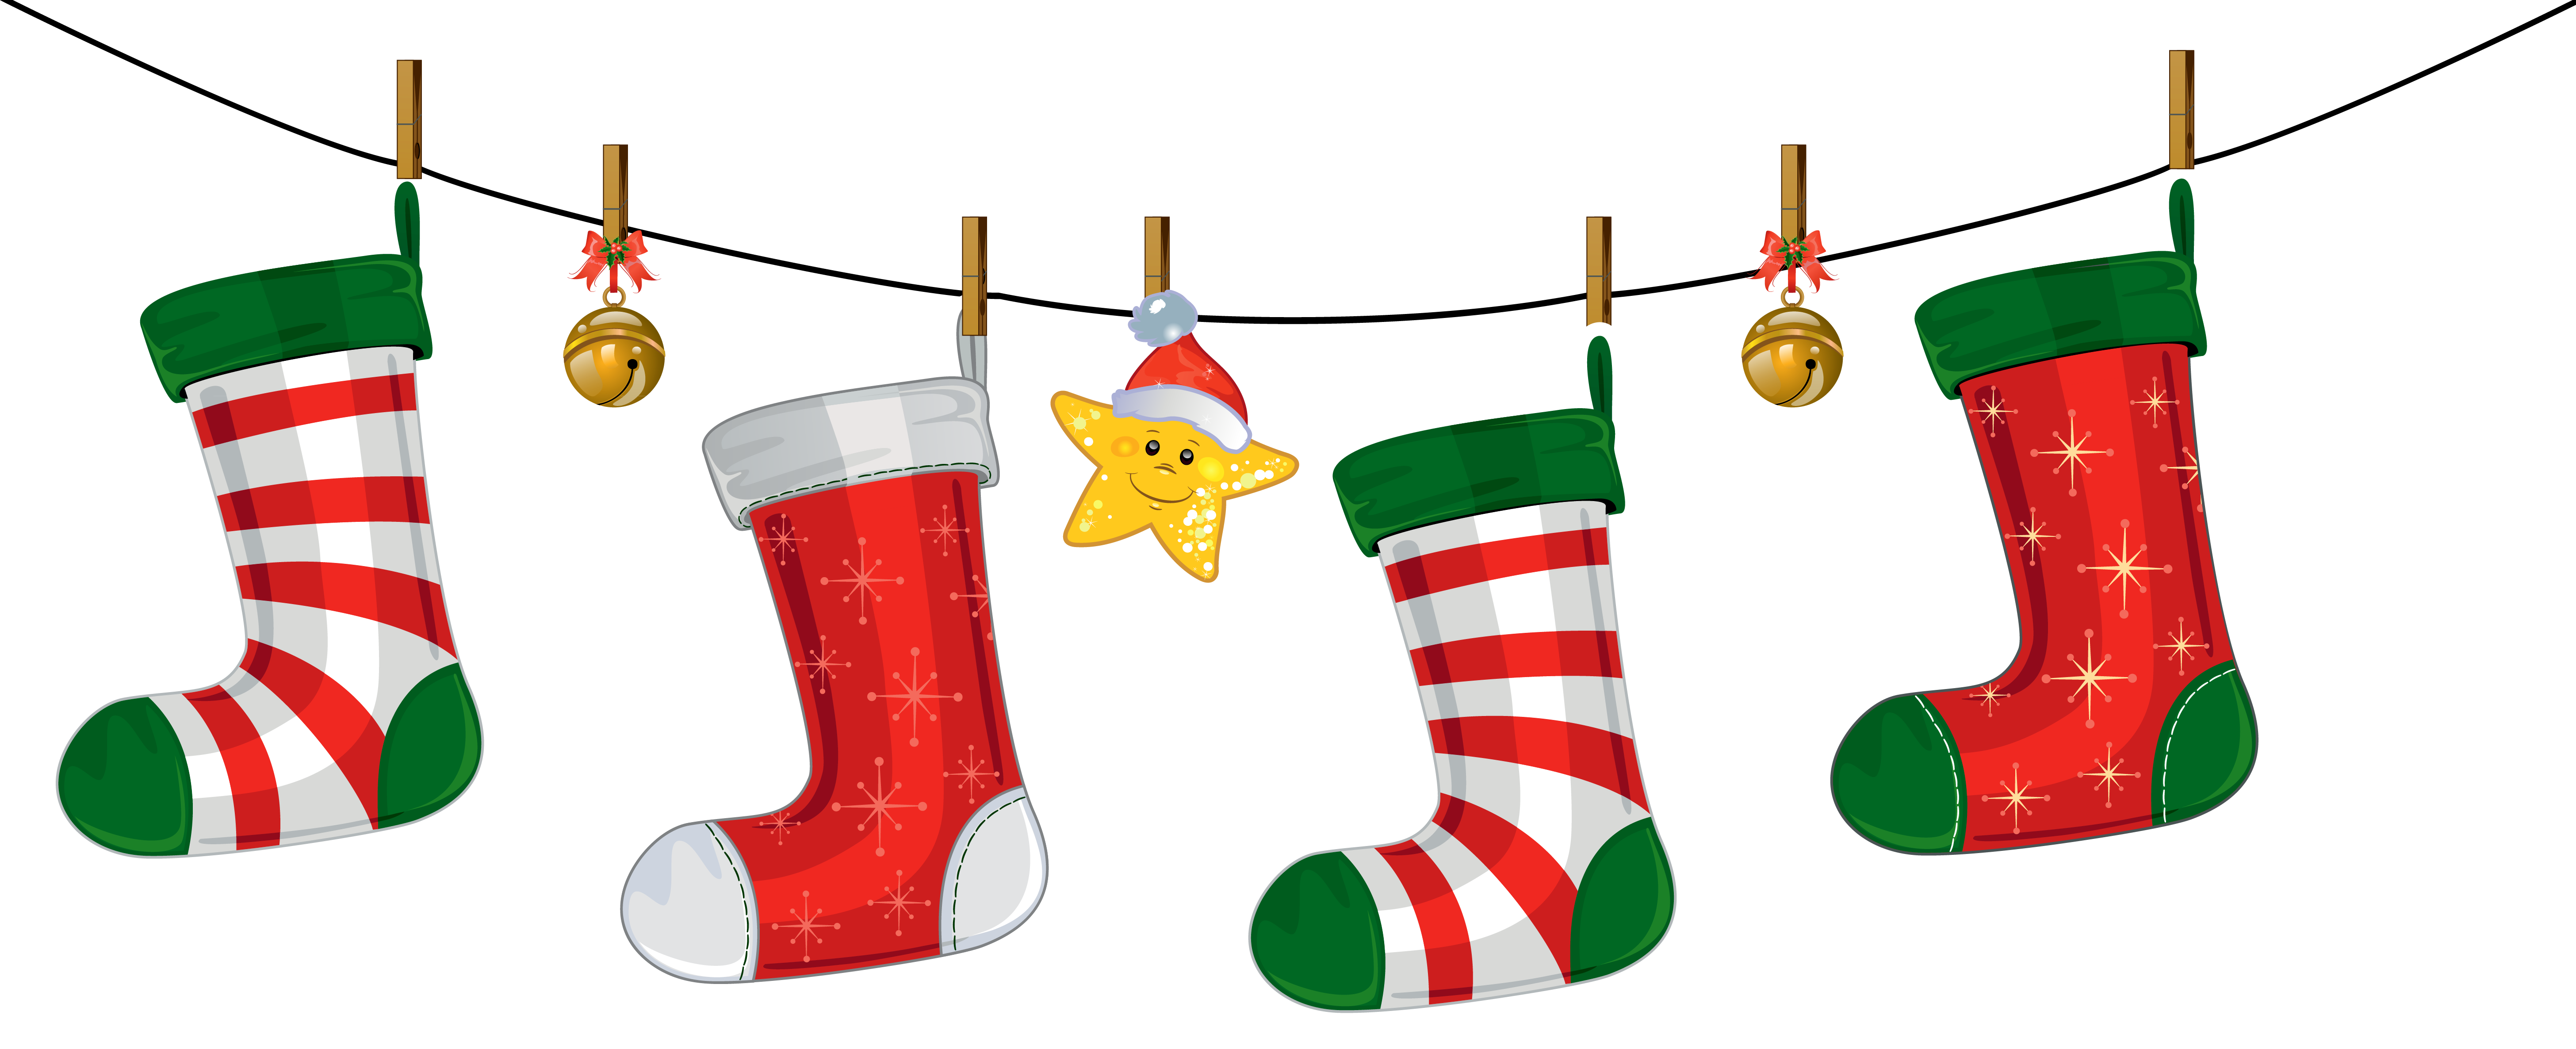 Transparent Christmas Stockings Decorati-Transparent Christmas Stockings Decoration Png Clipart Japoland-8